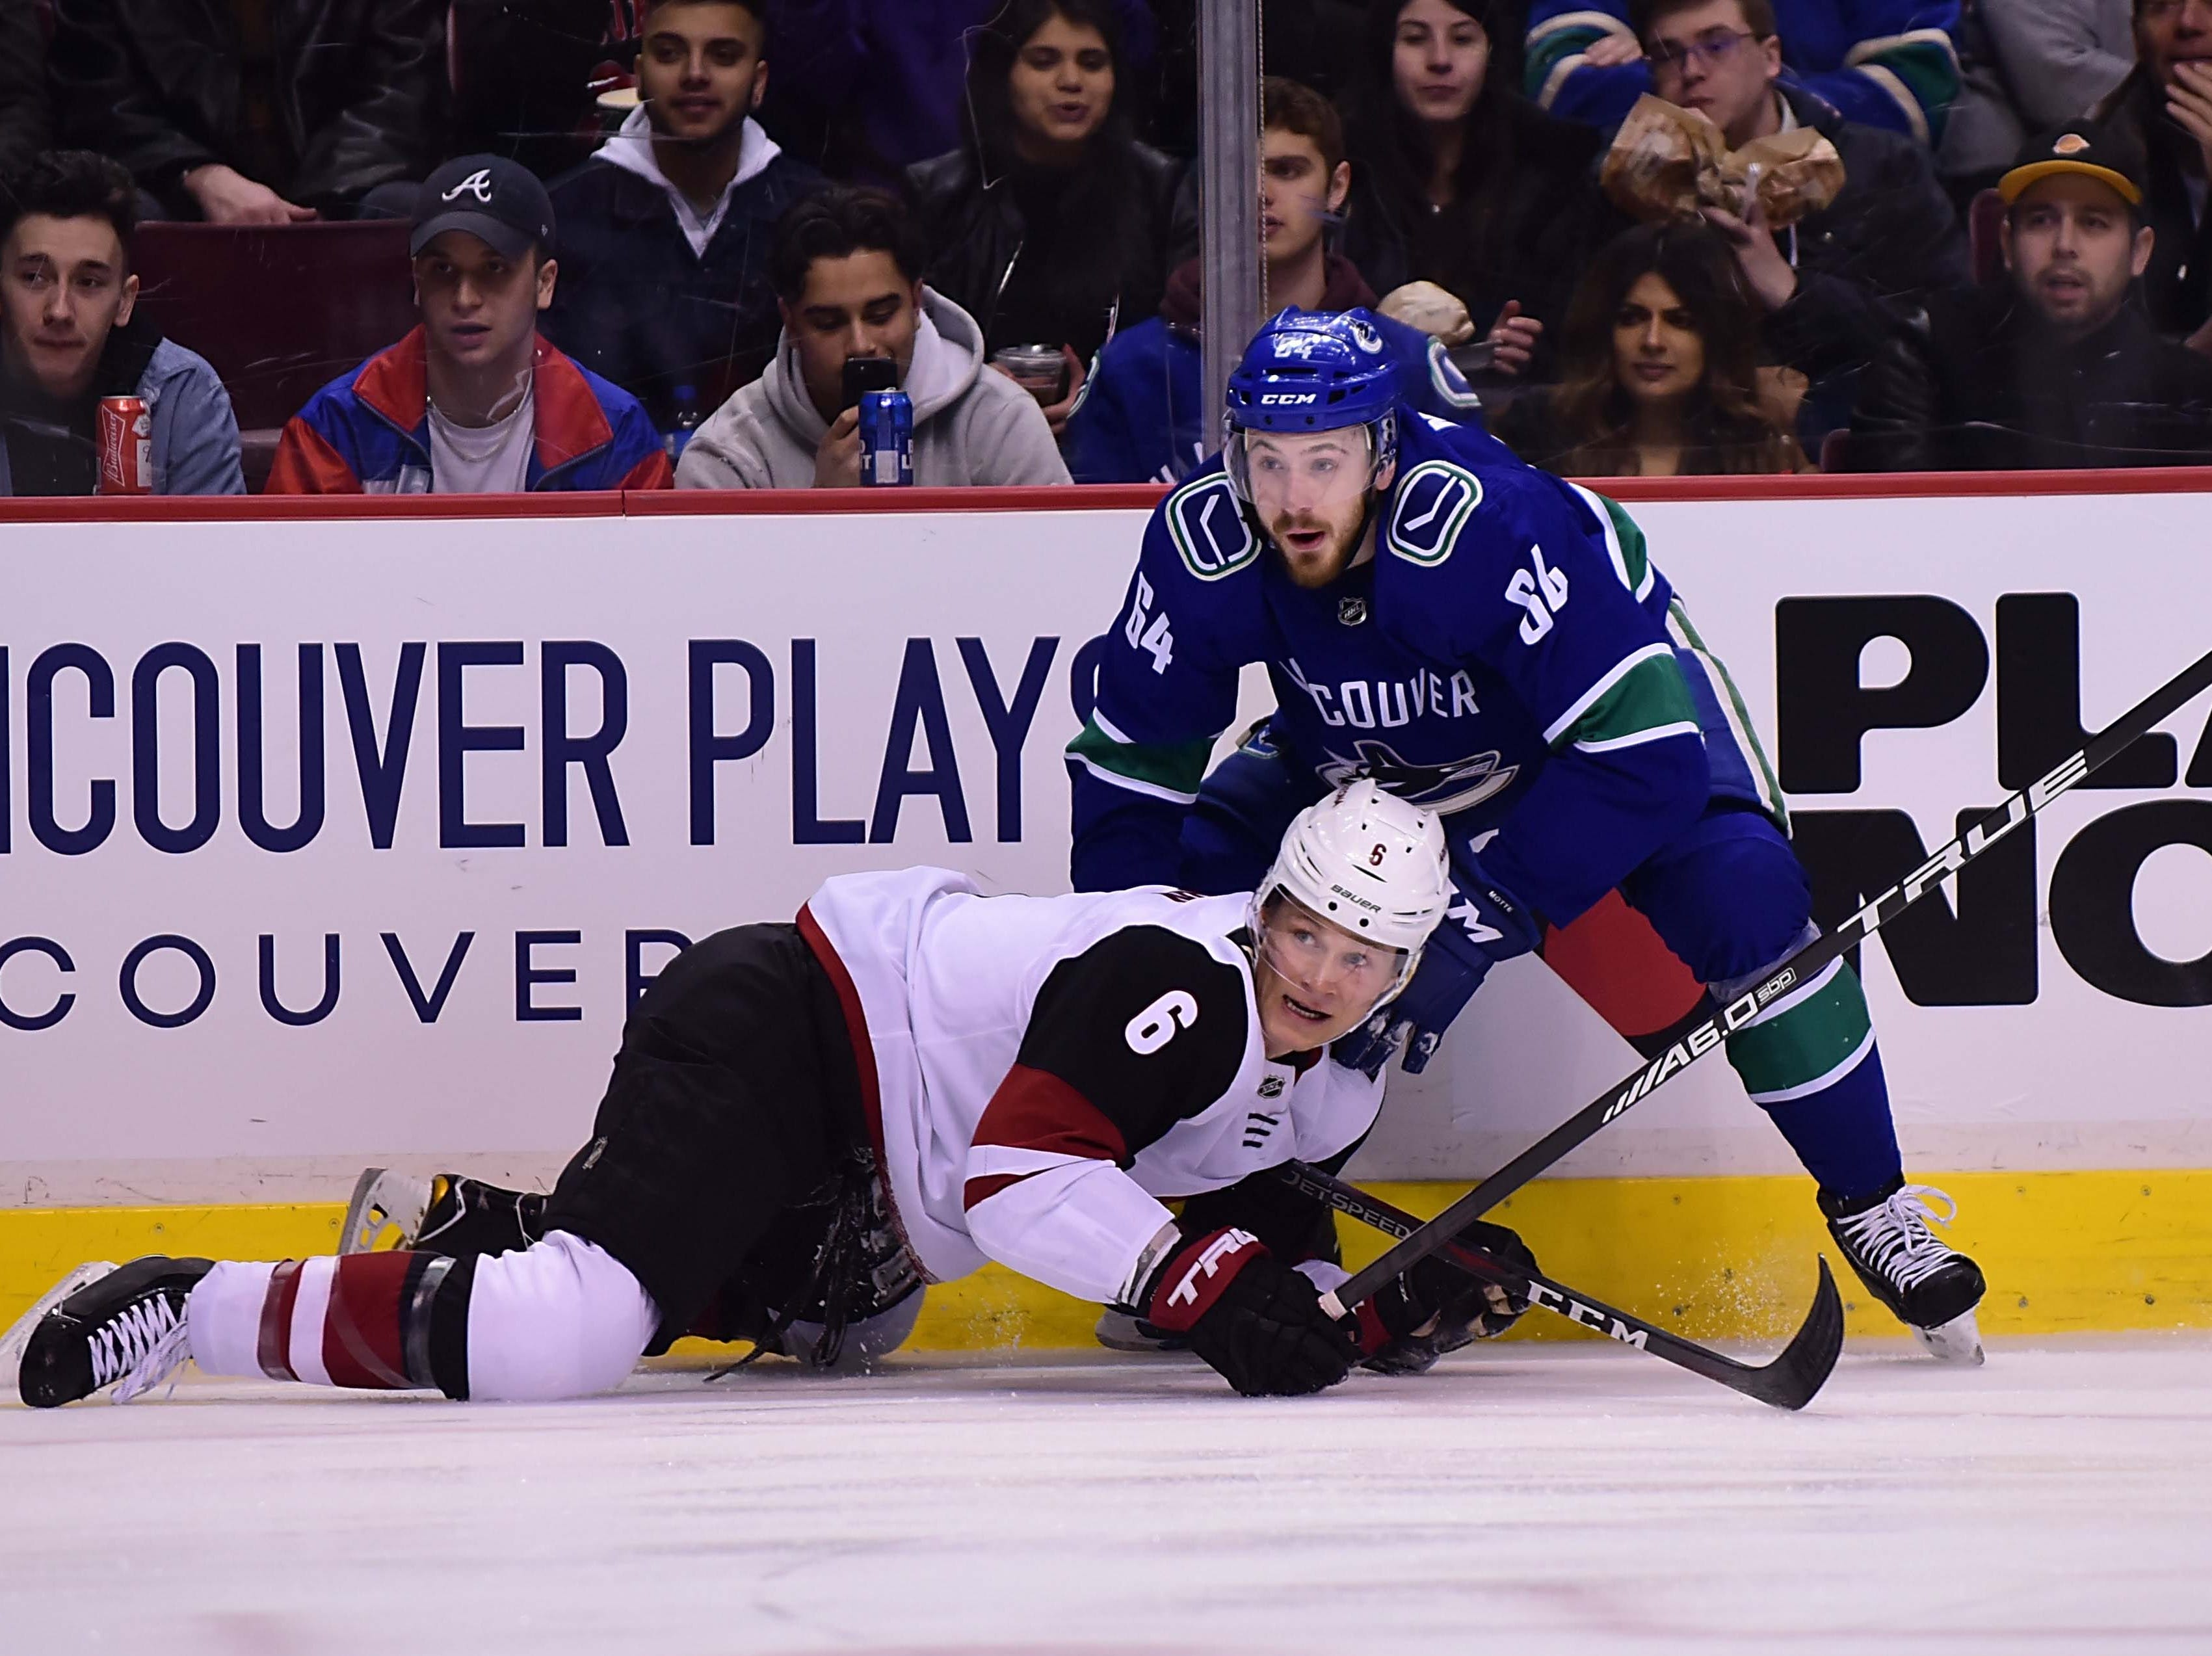 Feb 21, 2019; Vancouver, British Columbia, CAN; Vancouver Canucks forward Tyler Motte (64) checks Arizona Coyotes defenseman Jakob Chychrun (6) during the first period at Rogers Arena. Mandatory Credit: Anne-Marie Sorvin-USA TODAY Sports